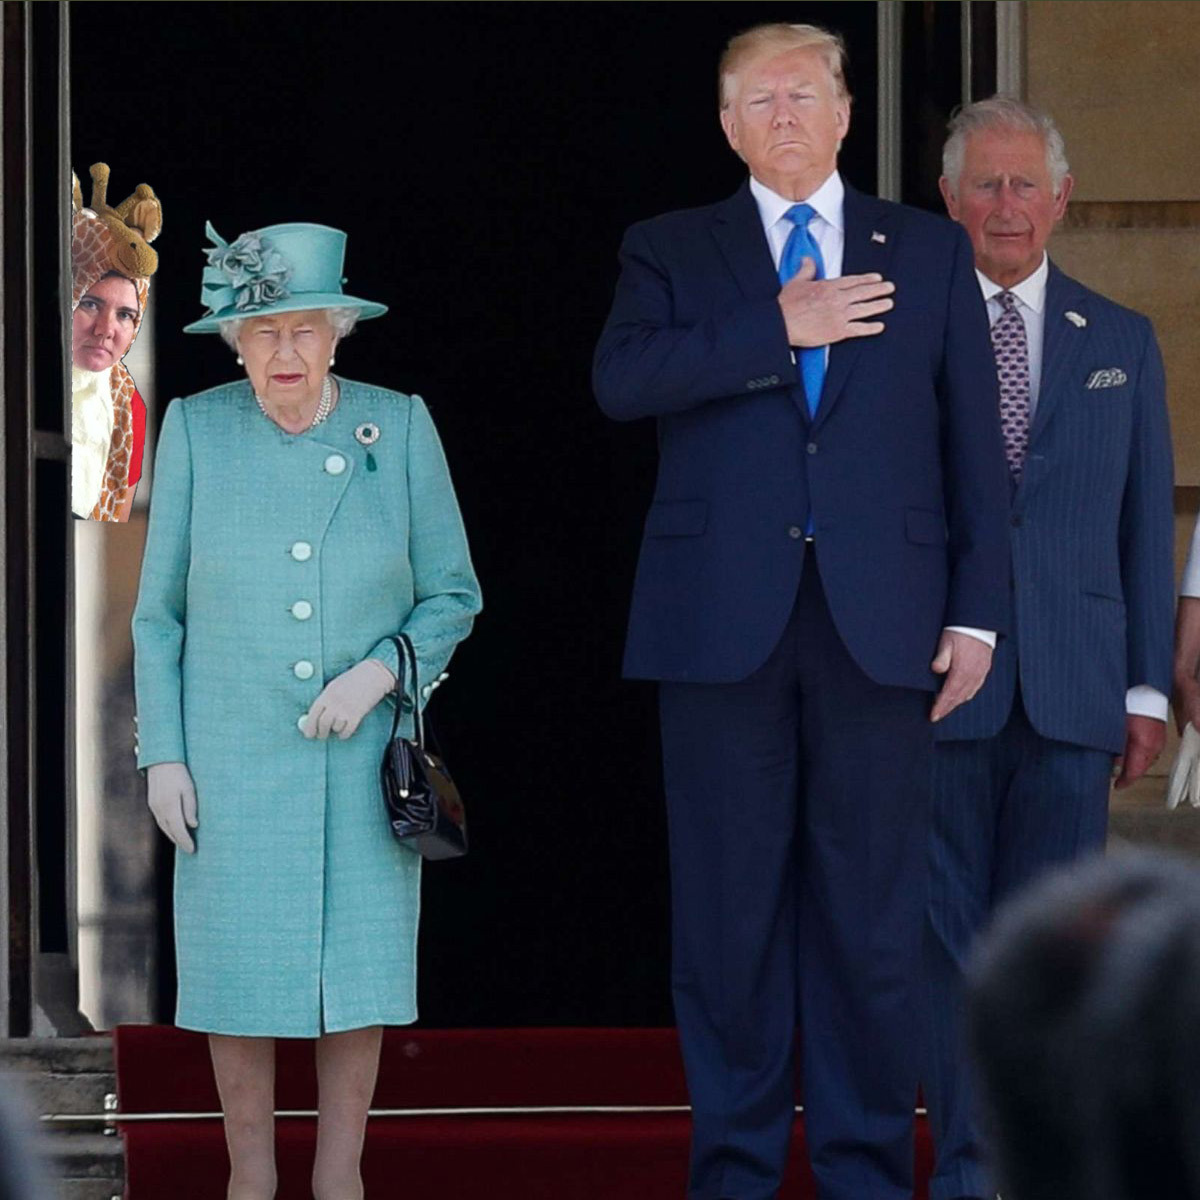 Sneaky Giraffe meets Trump and QEII by SchelleFire